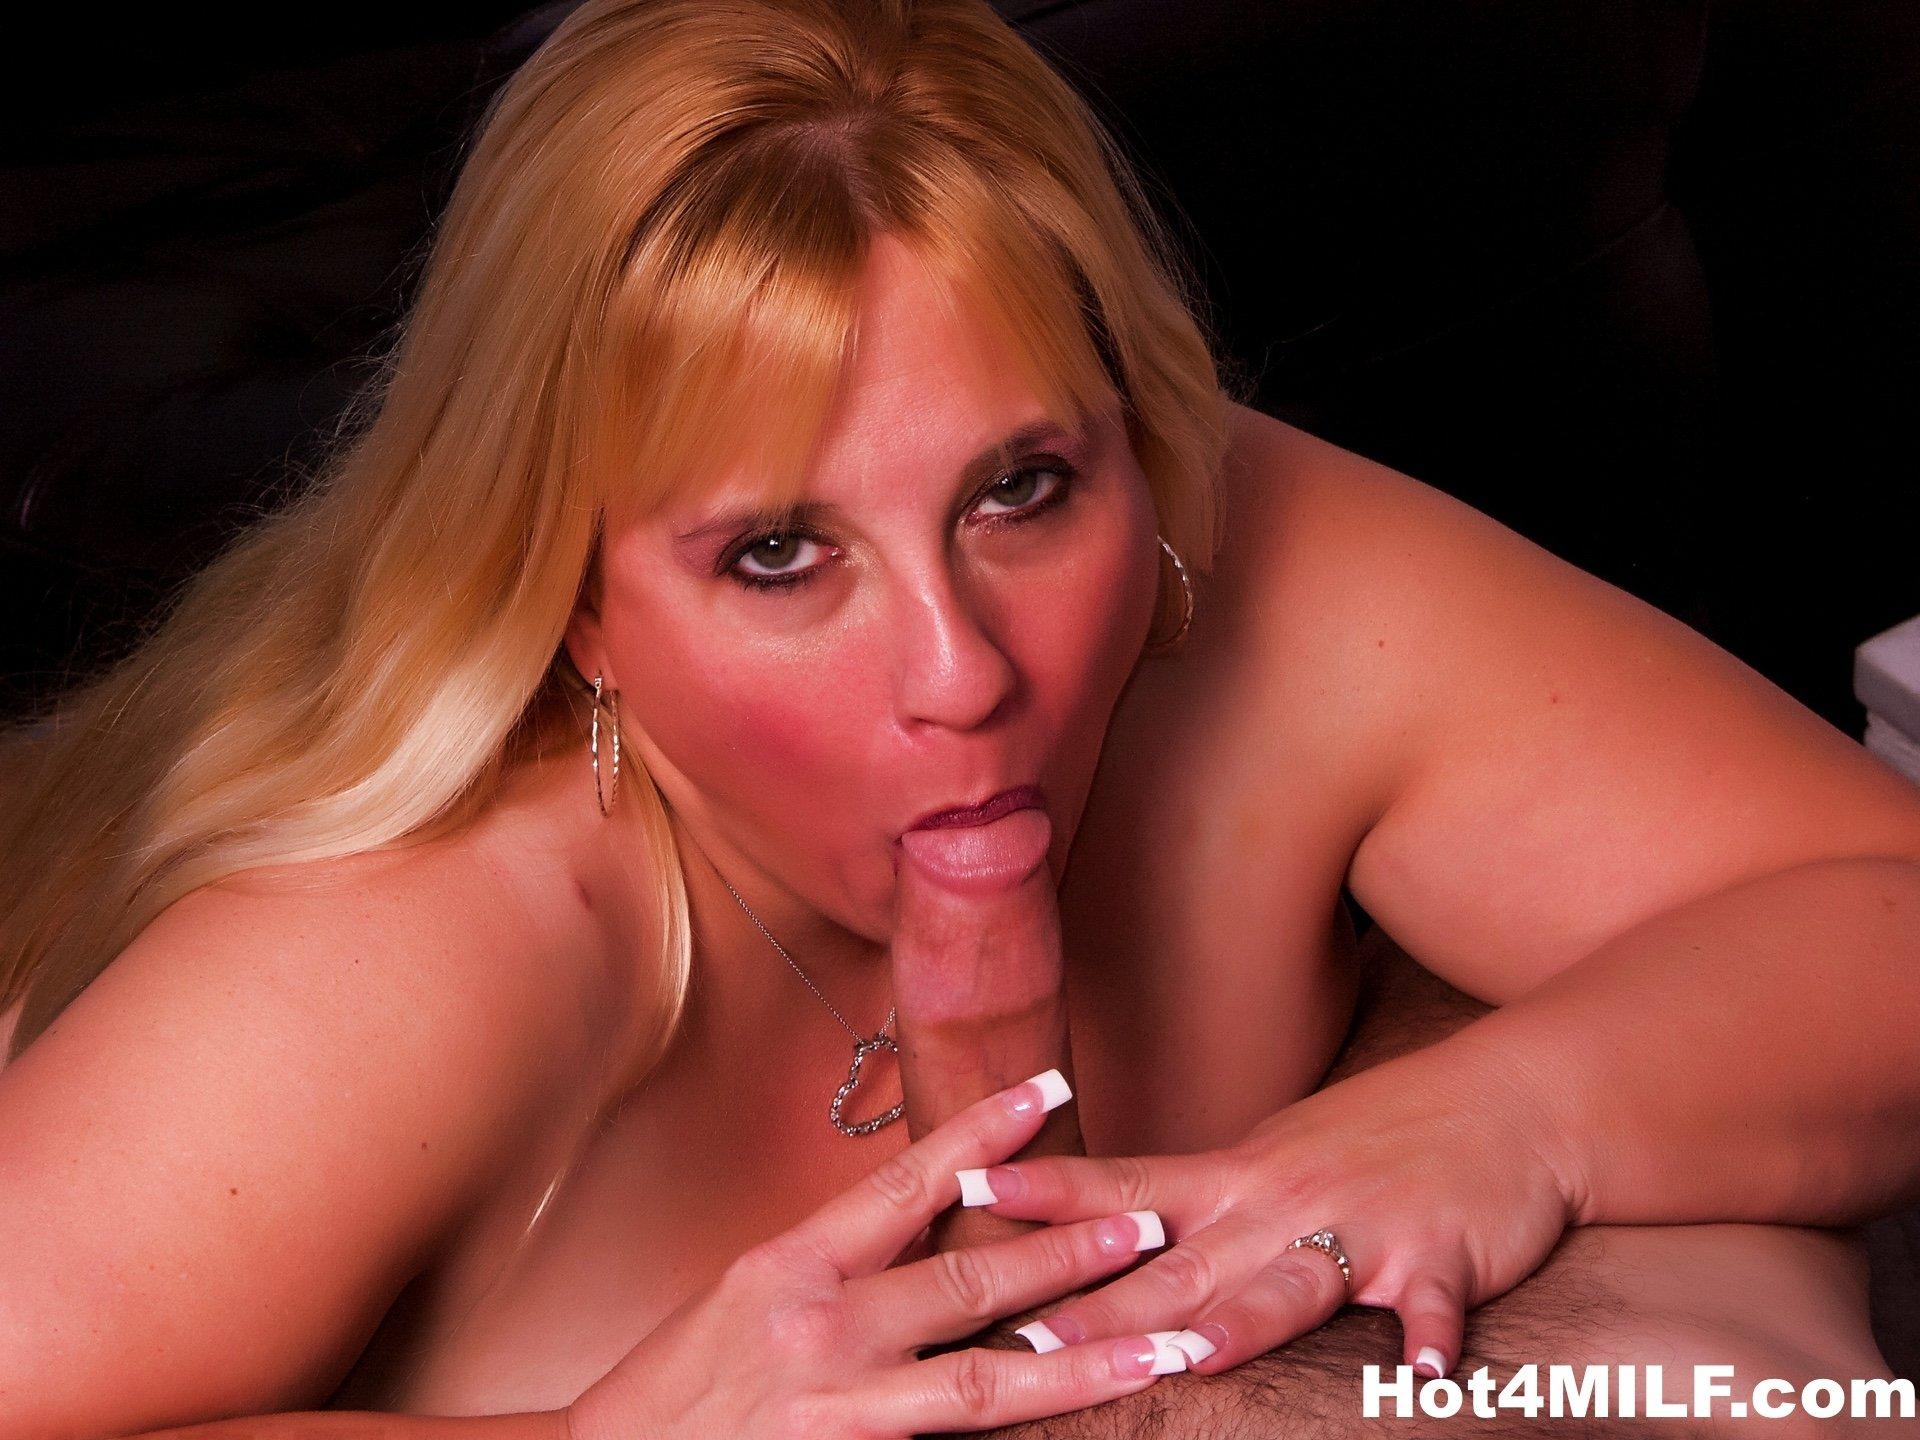 Solo bbw mature San diego amateur model thumb gallery